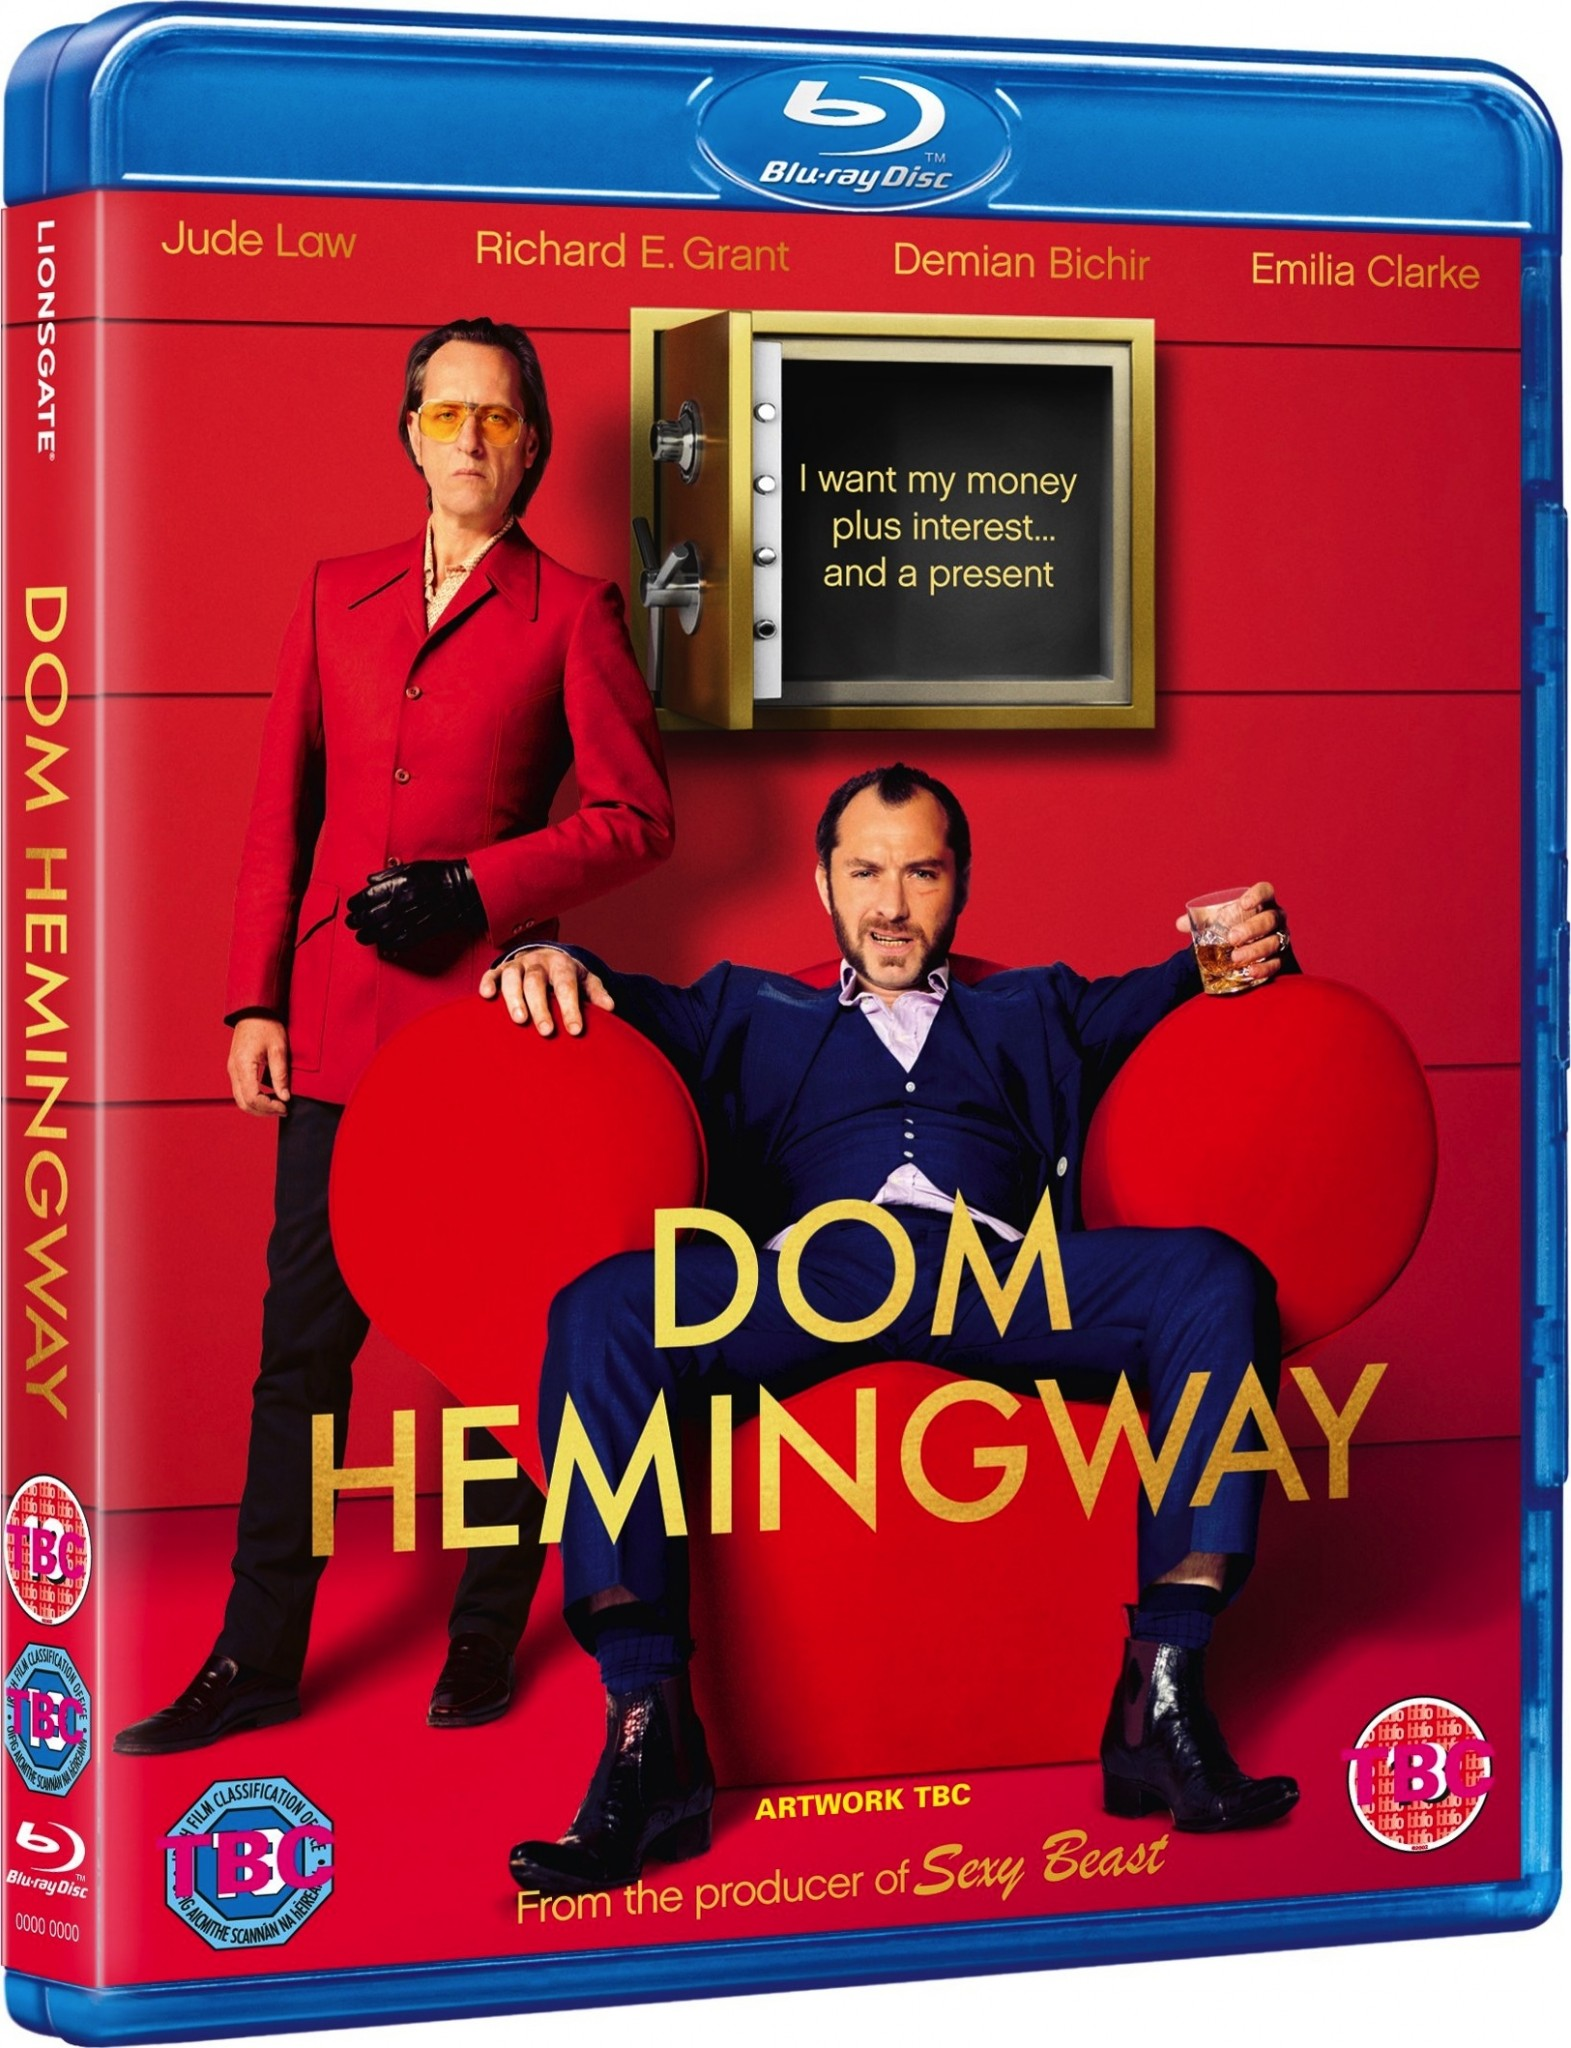 Dom Hemingway (2013) Movies Watch online in hd 720px